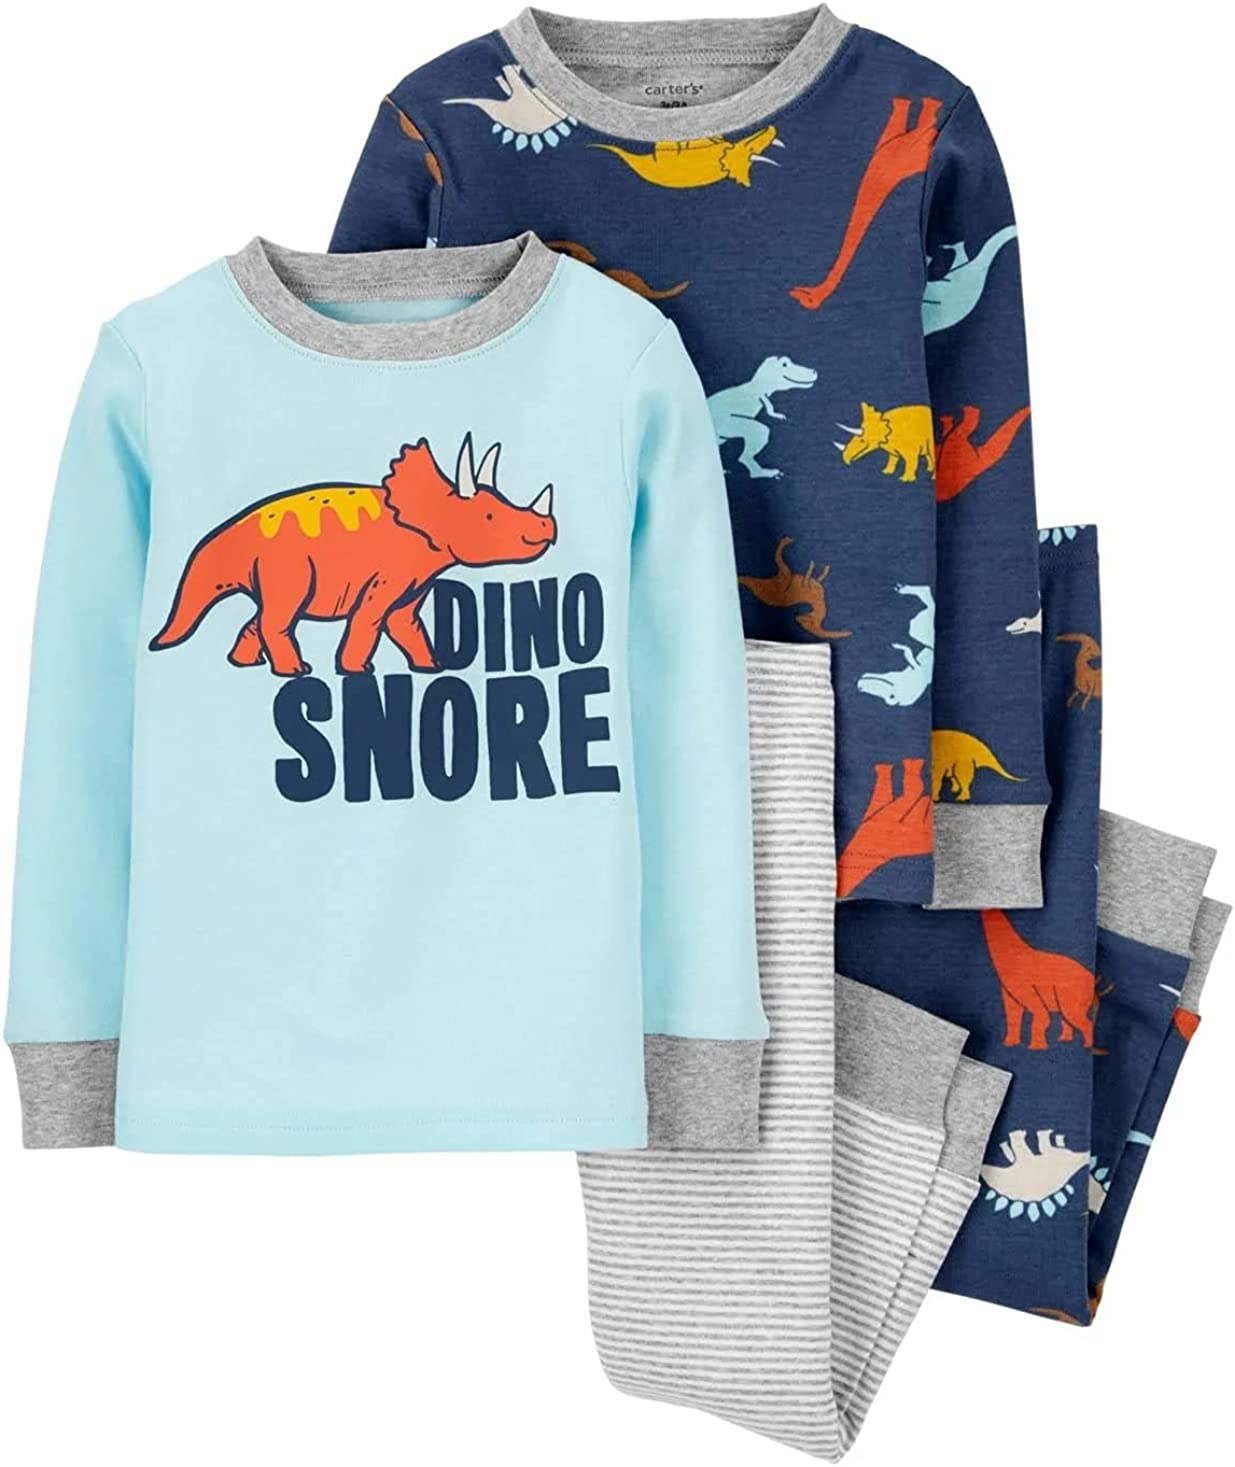 Carter's 4-Piece Toddler and Baby Boy's Snug fit Cotton Pajamas (Dino Snore, 3T)